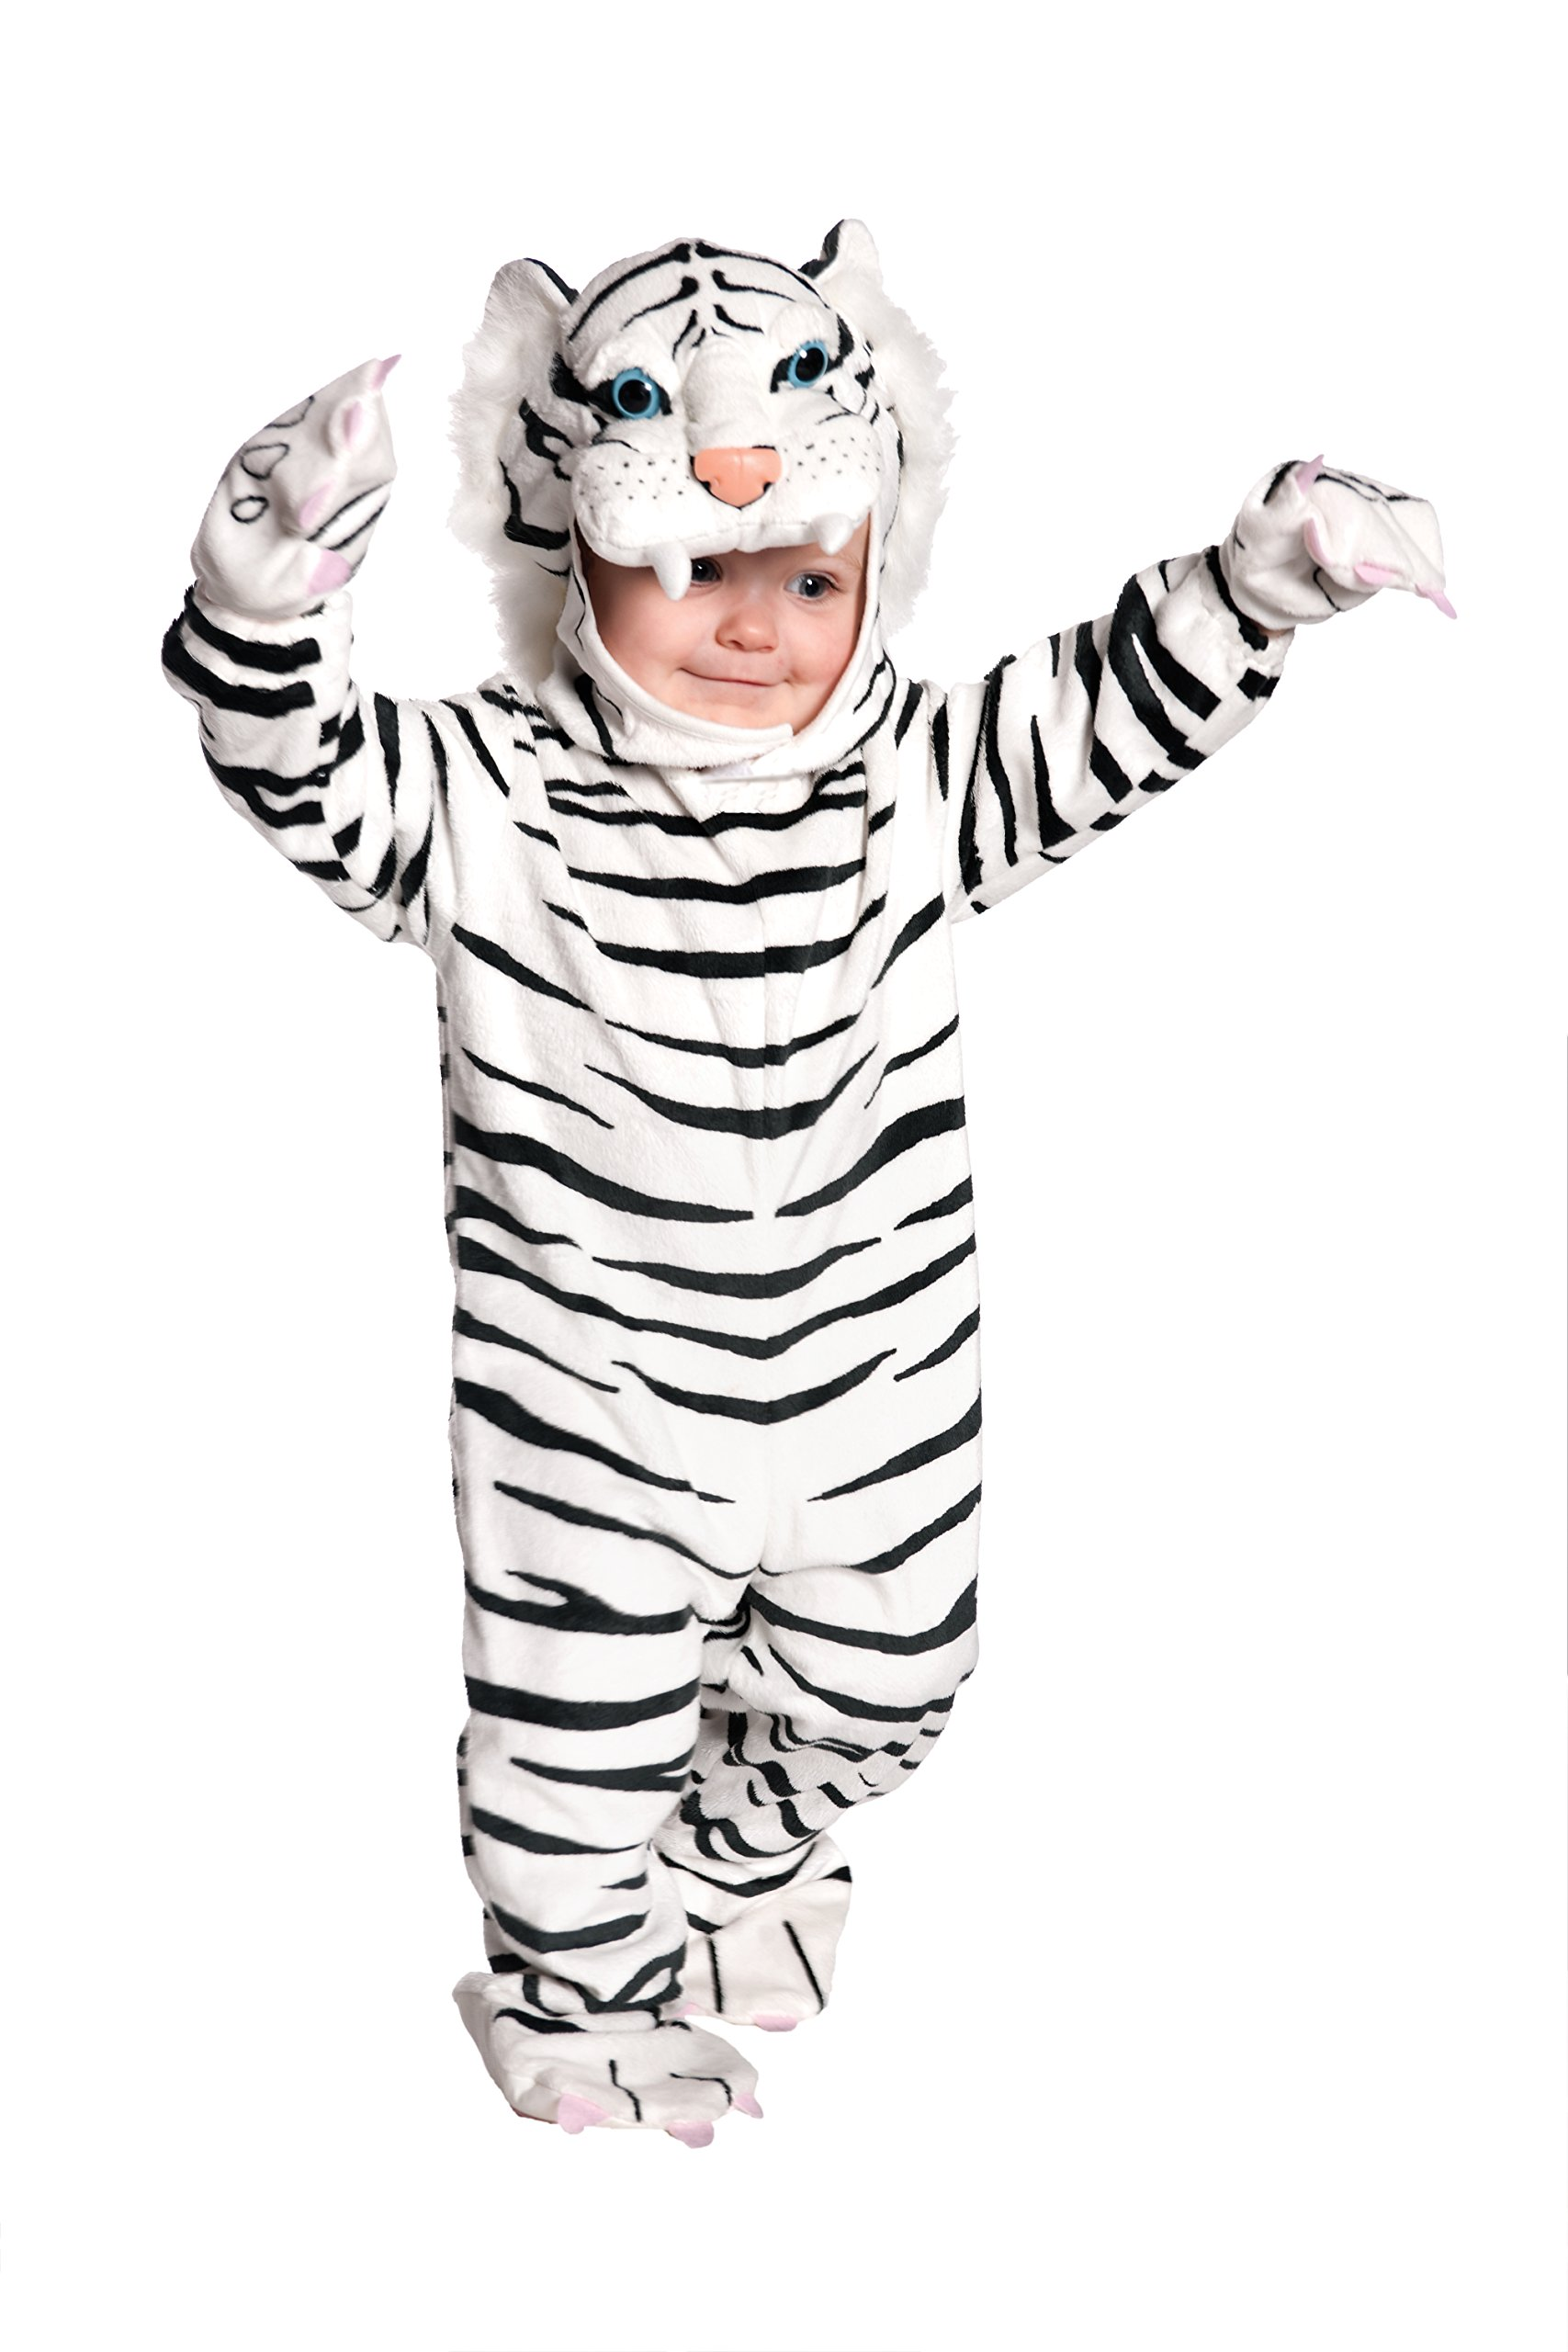 Underwraps Toddler's Tiger Costume Jumpsuit – White, Small (6-12 Months)